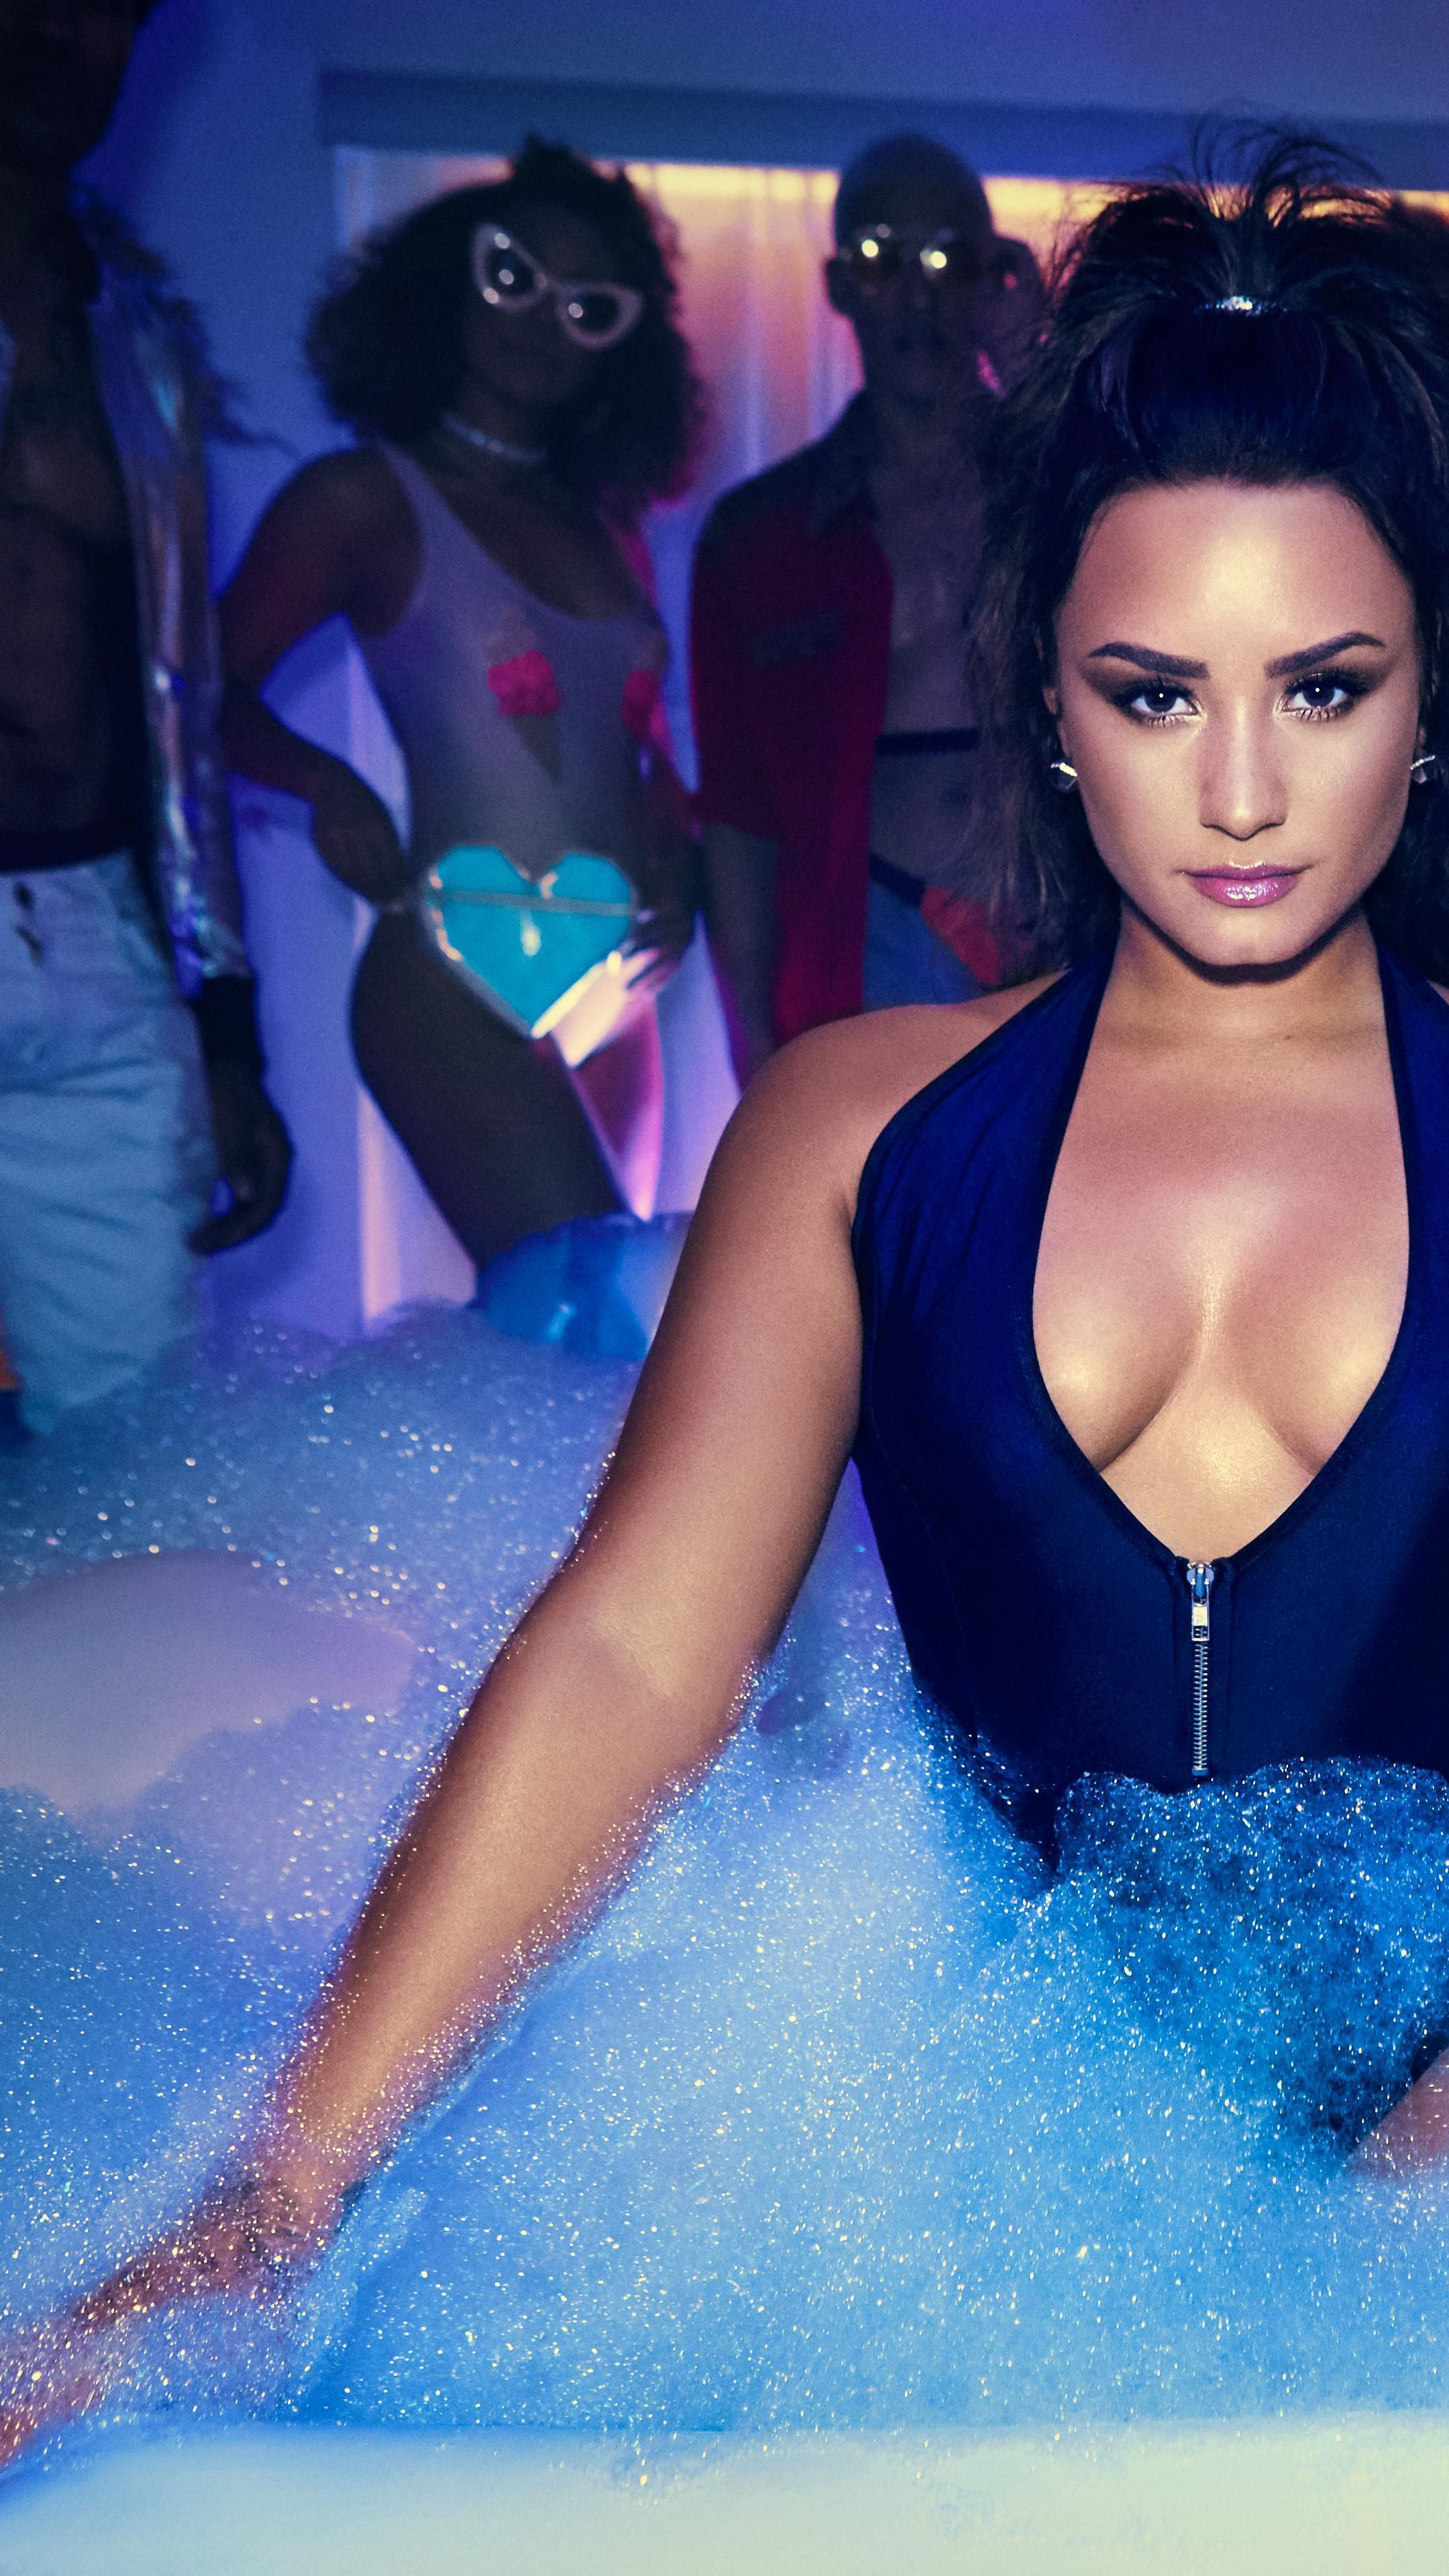 Demi Lovato Wallpaper Full Hd Demi Lovato Lovato Demi